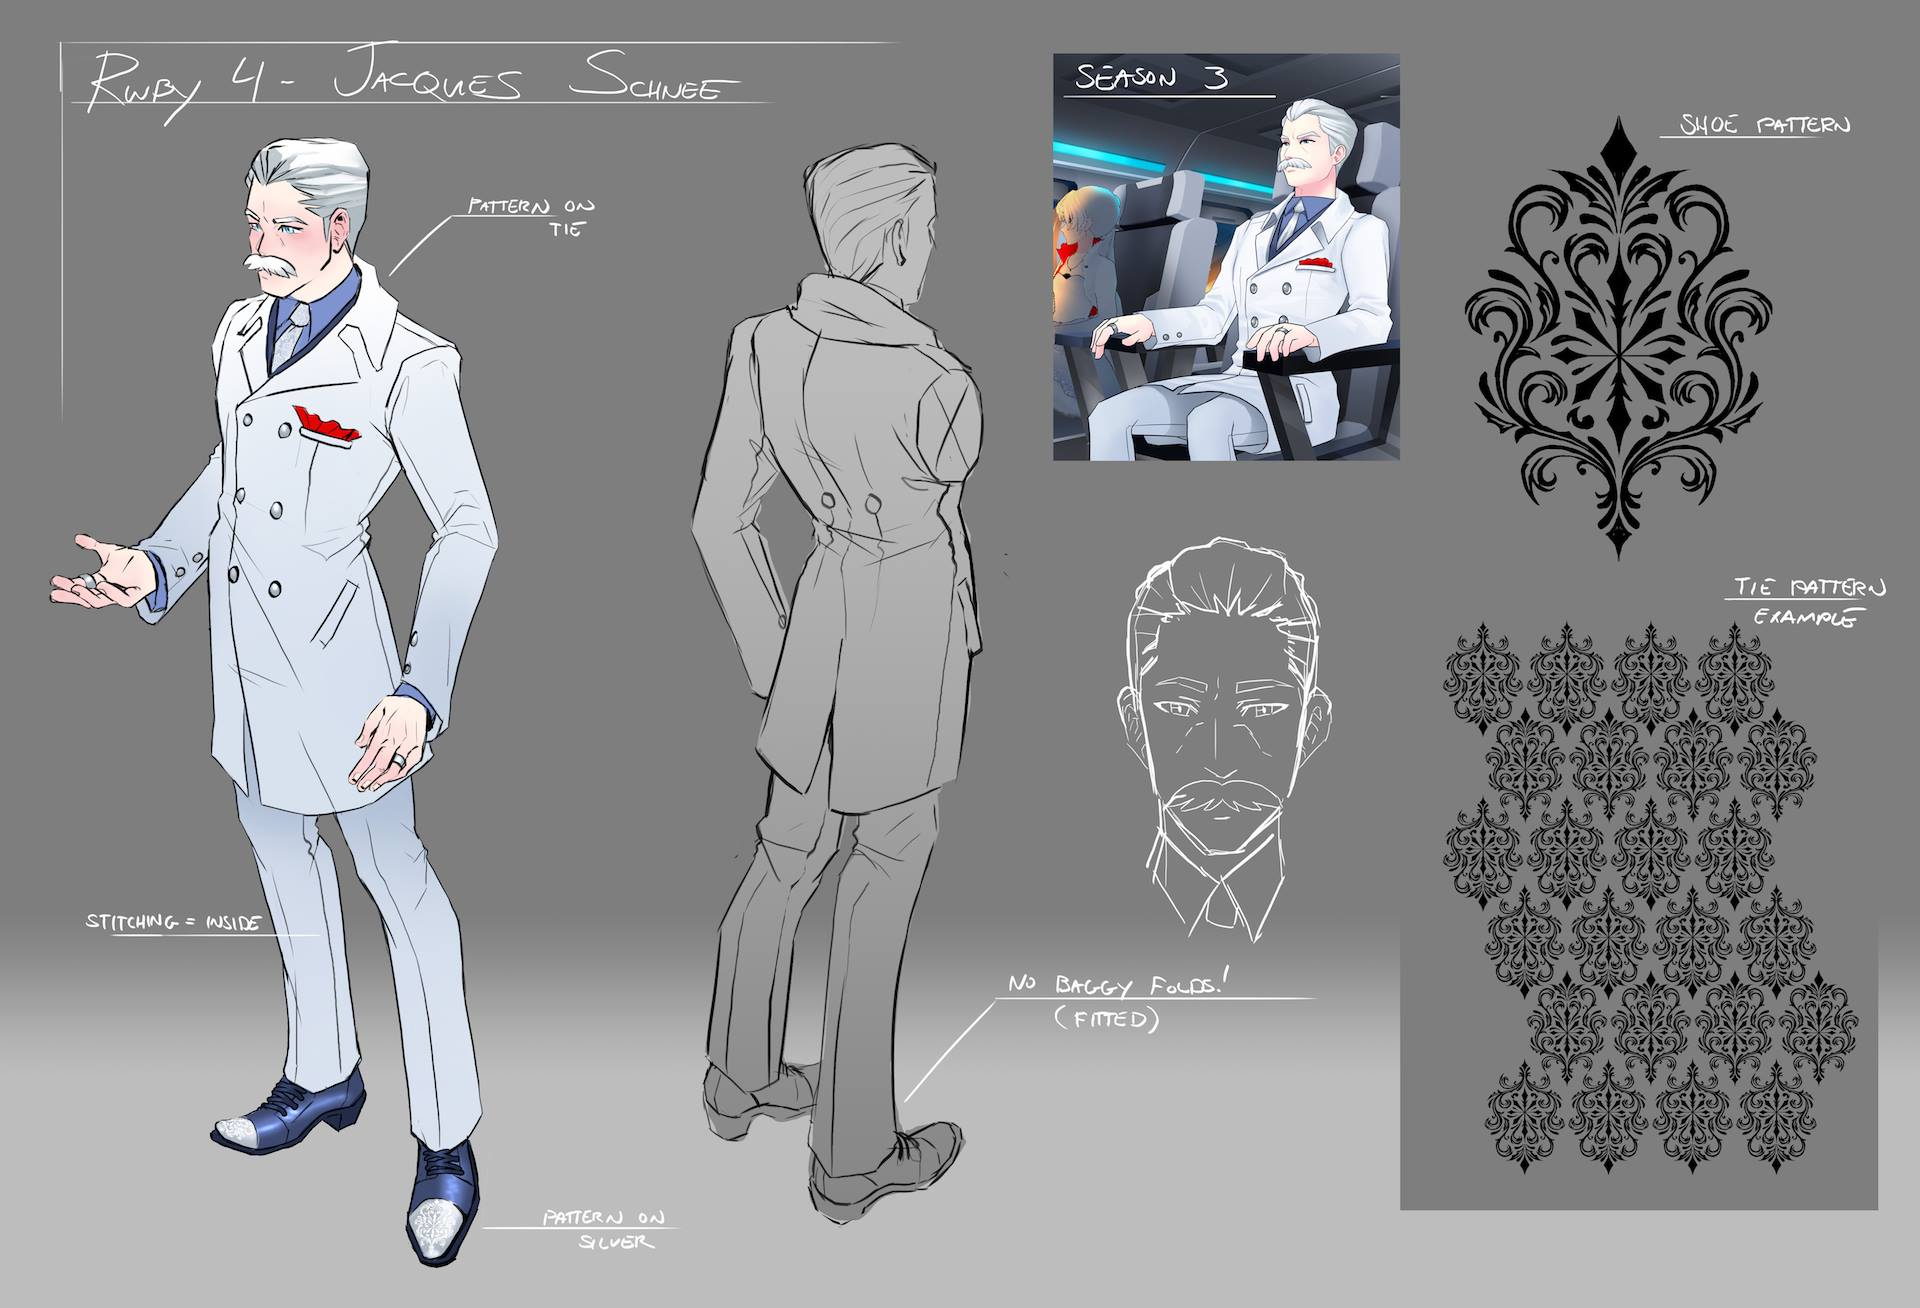 Jacques Schnee/Image Gallery | RWBY Wiki | FANDOM powered ...